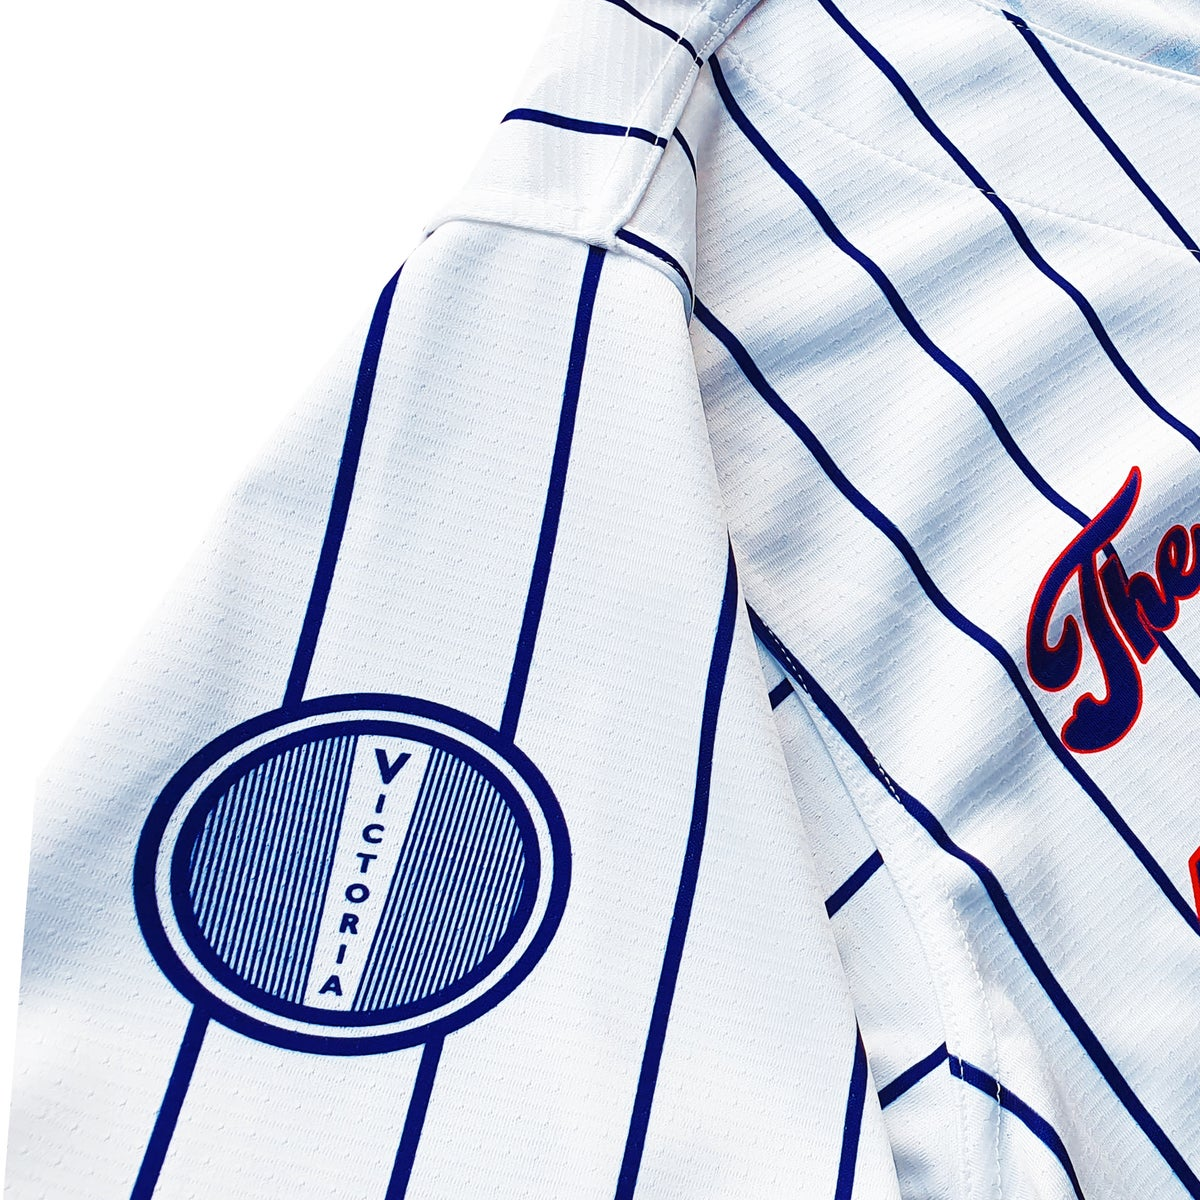 The Victoria Dalston Baseball Jersey